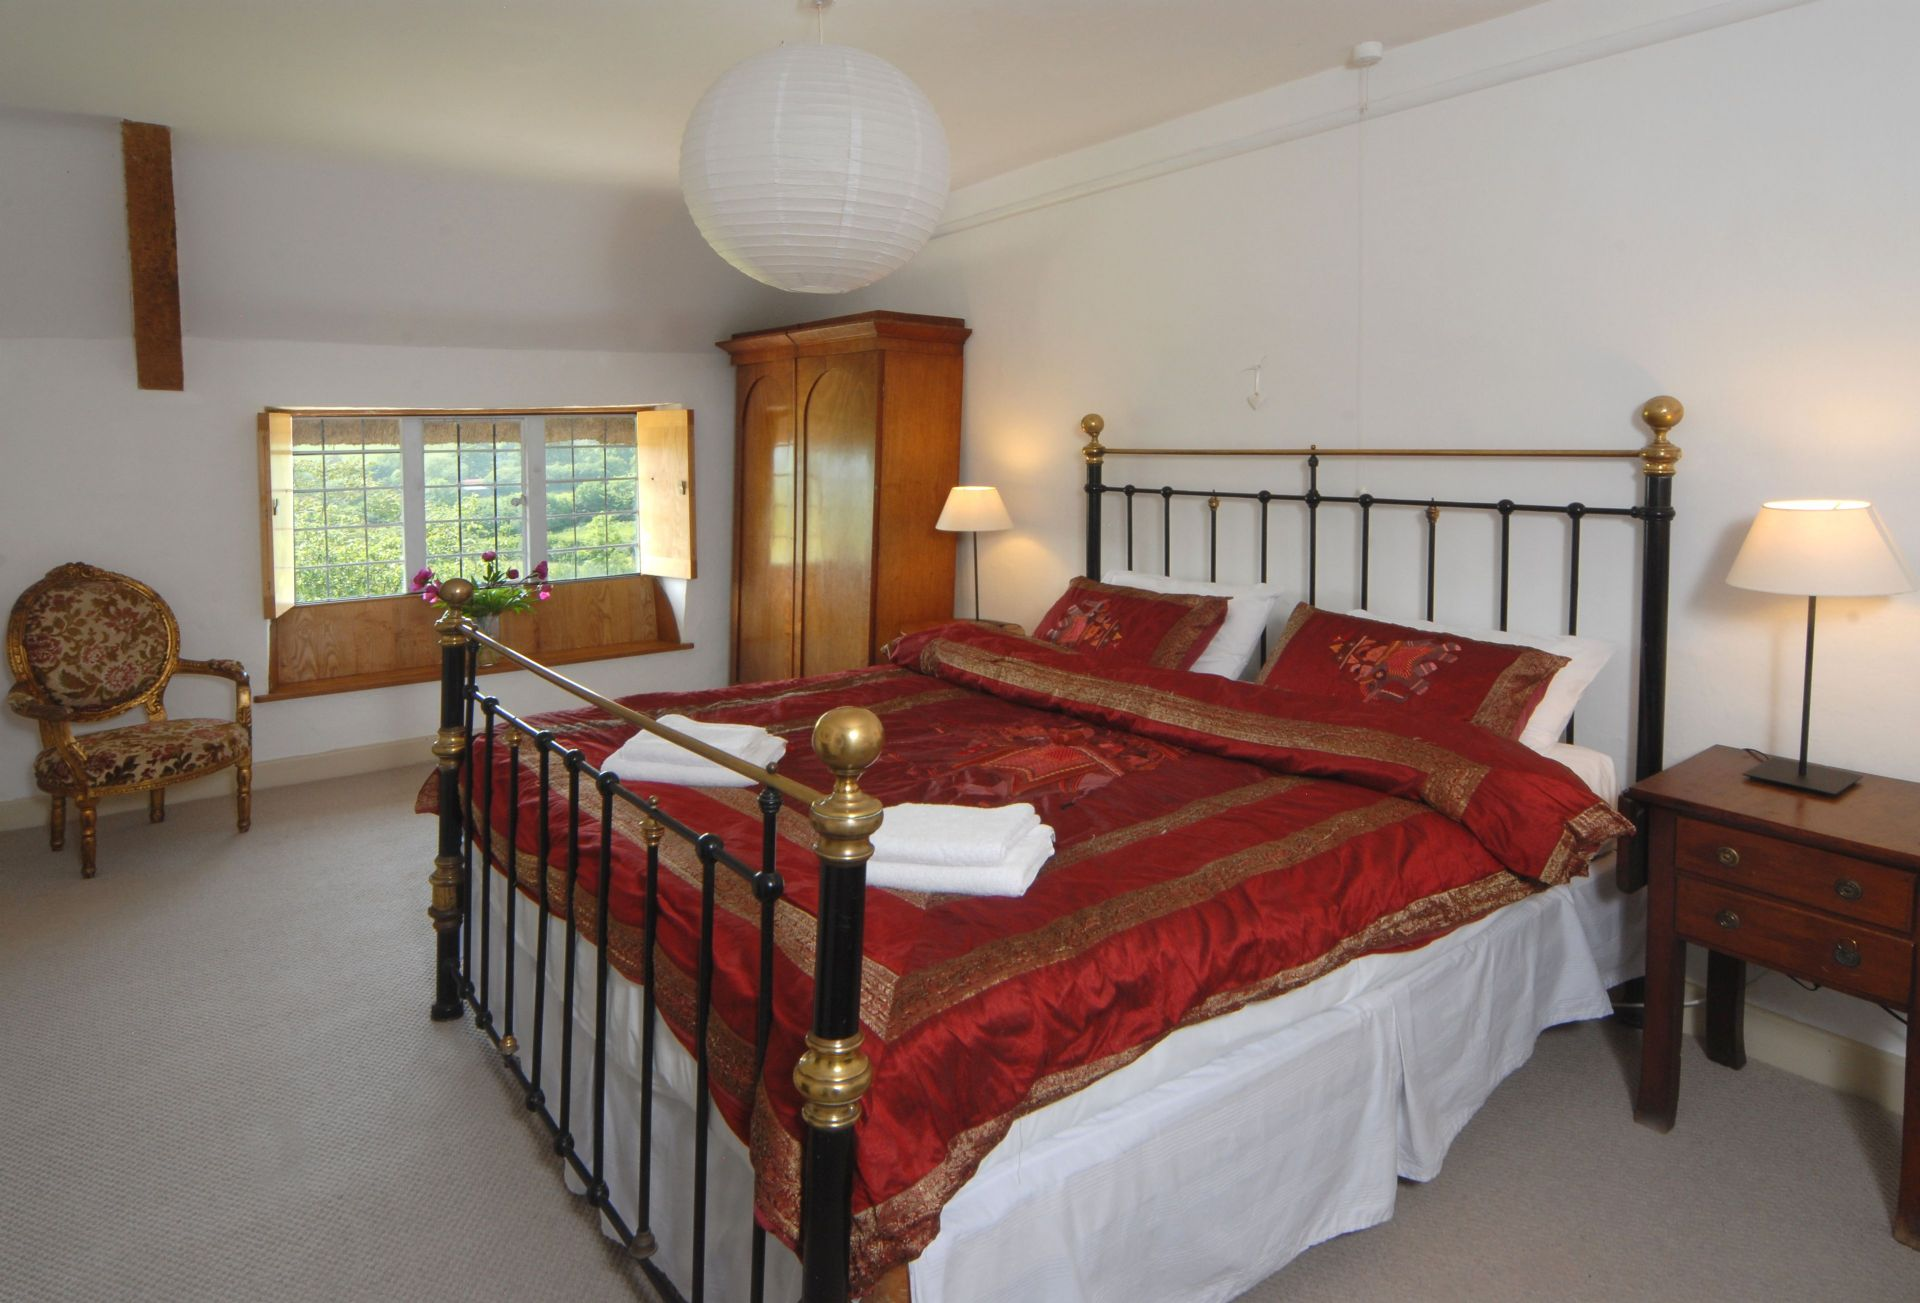 A view of the Master Bedroom